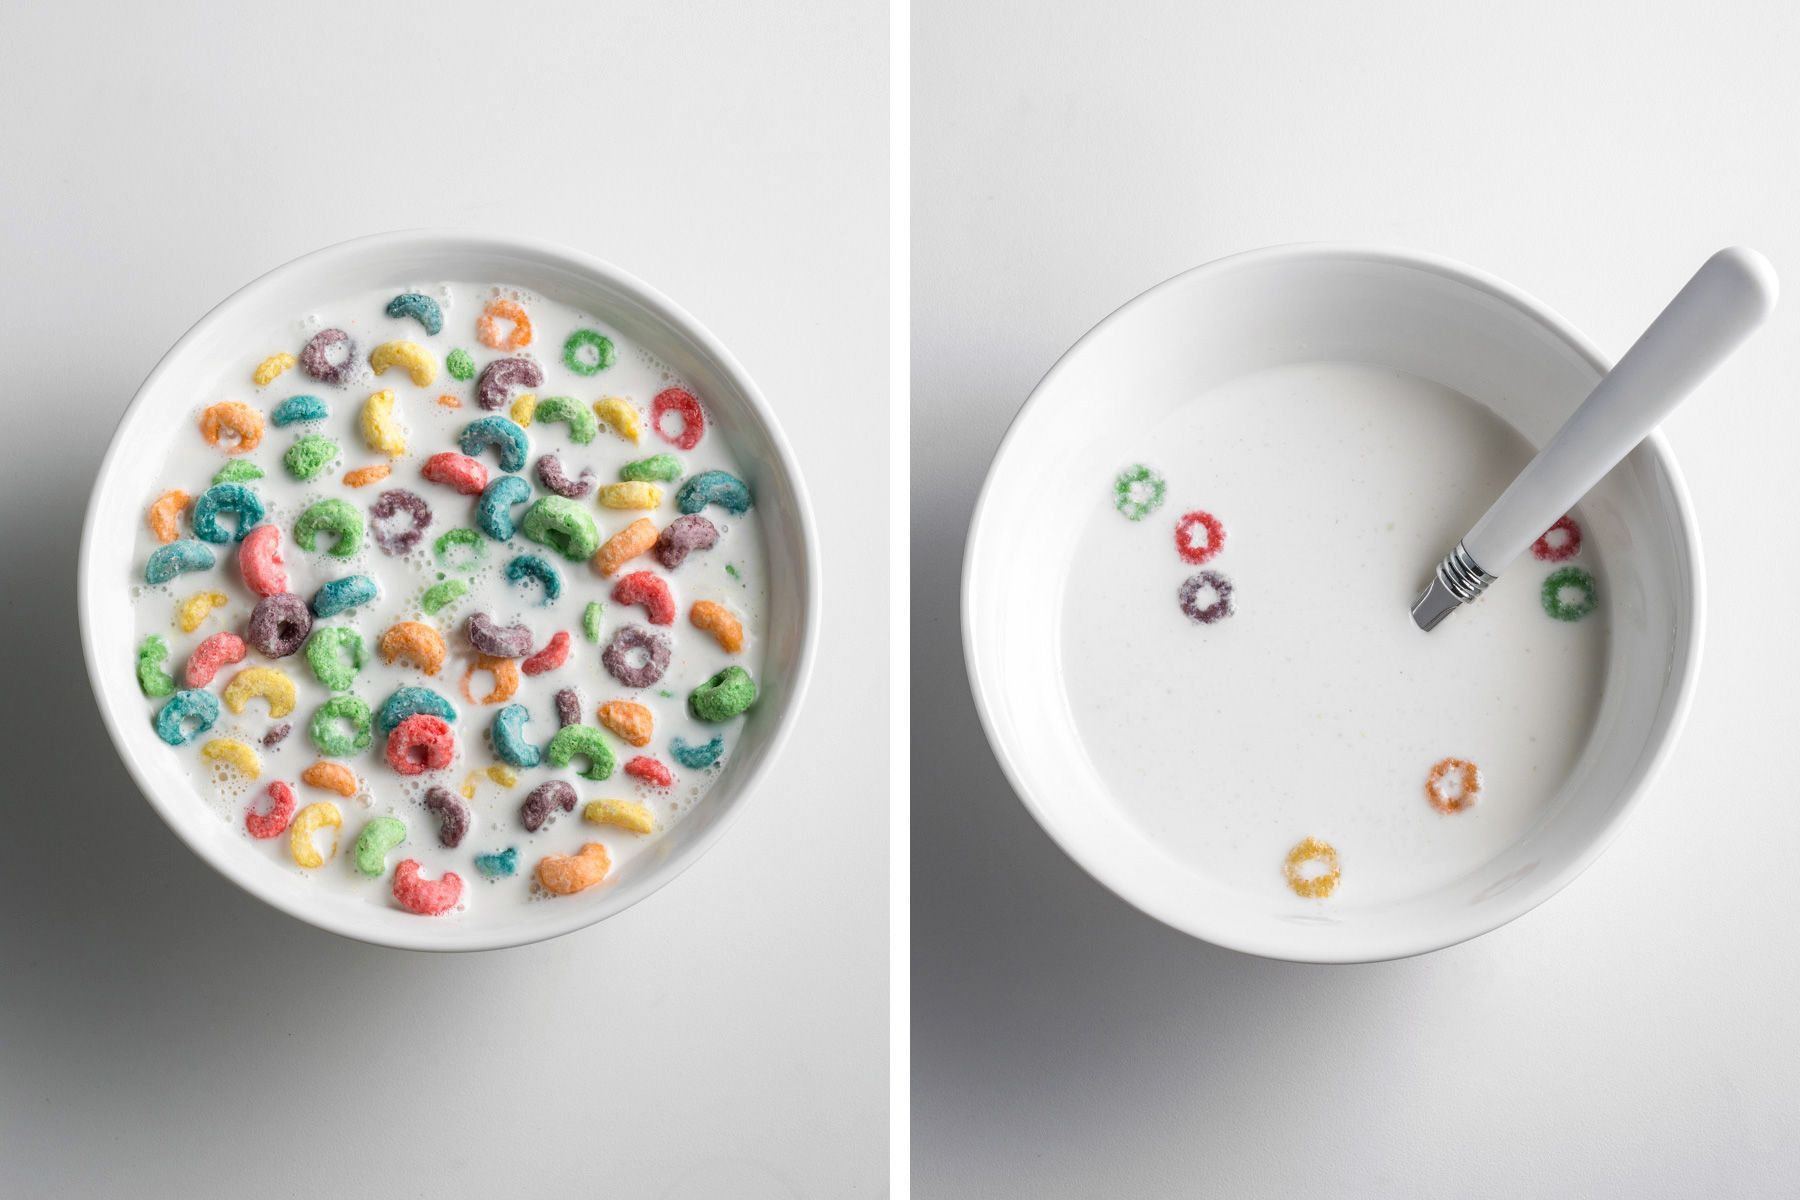 Fruit Loops cereal